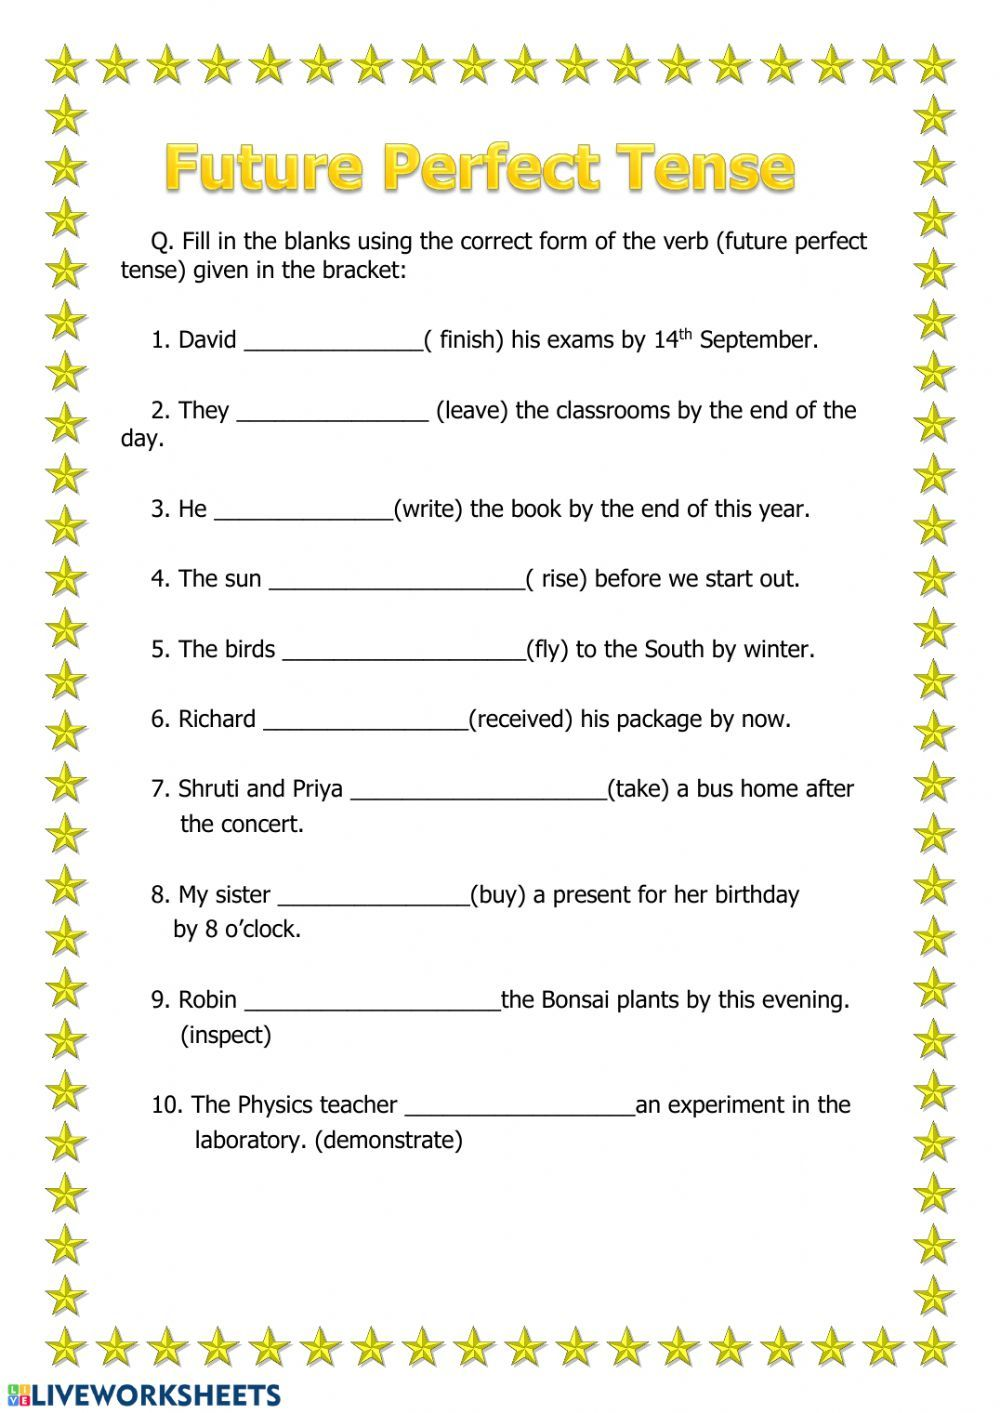 Future Perfect Interactive And Downloadable Worksheet You Can Do The Exercises Online Or Download The Worksh Perfect Tense Future Perfect Vocabulary Exercises